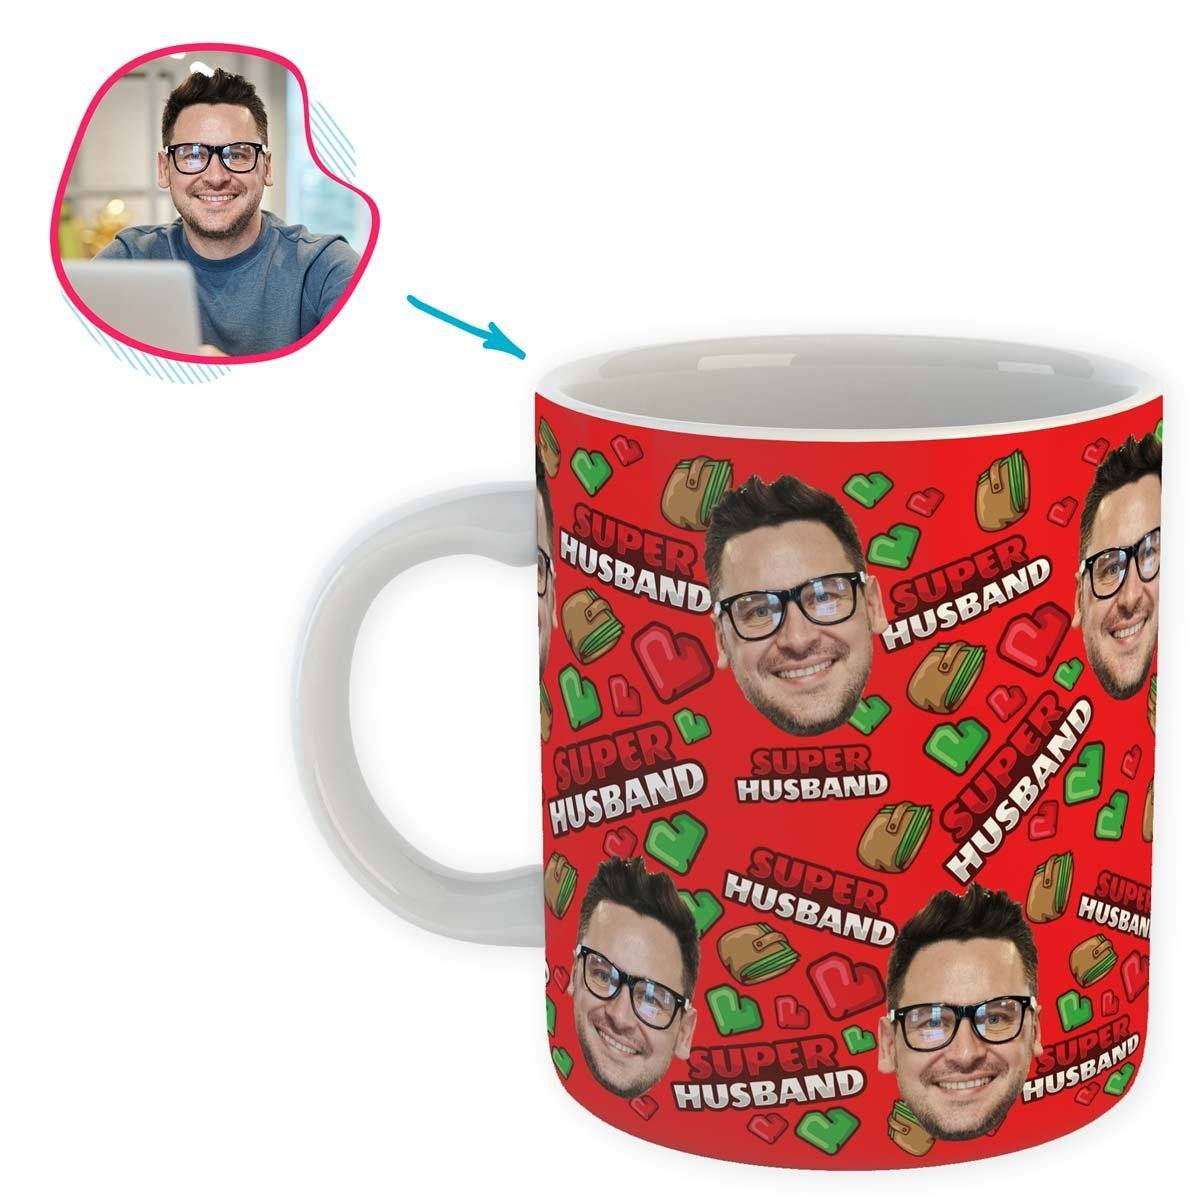 Red Husband personalized mug with photo of face printed on it